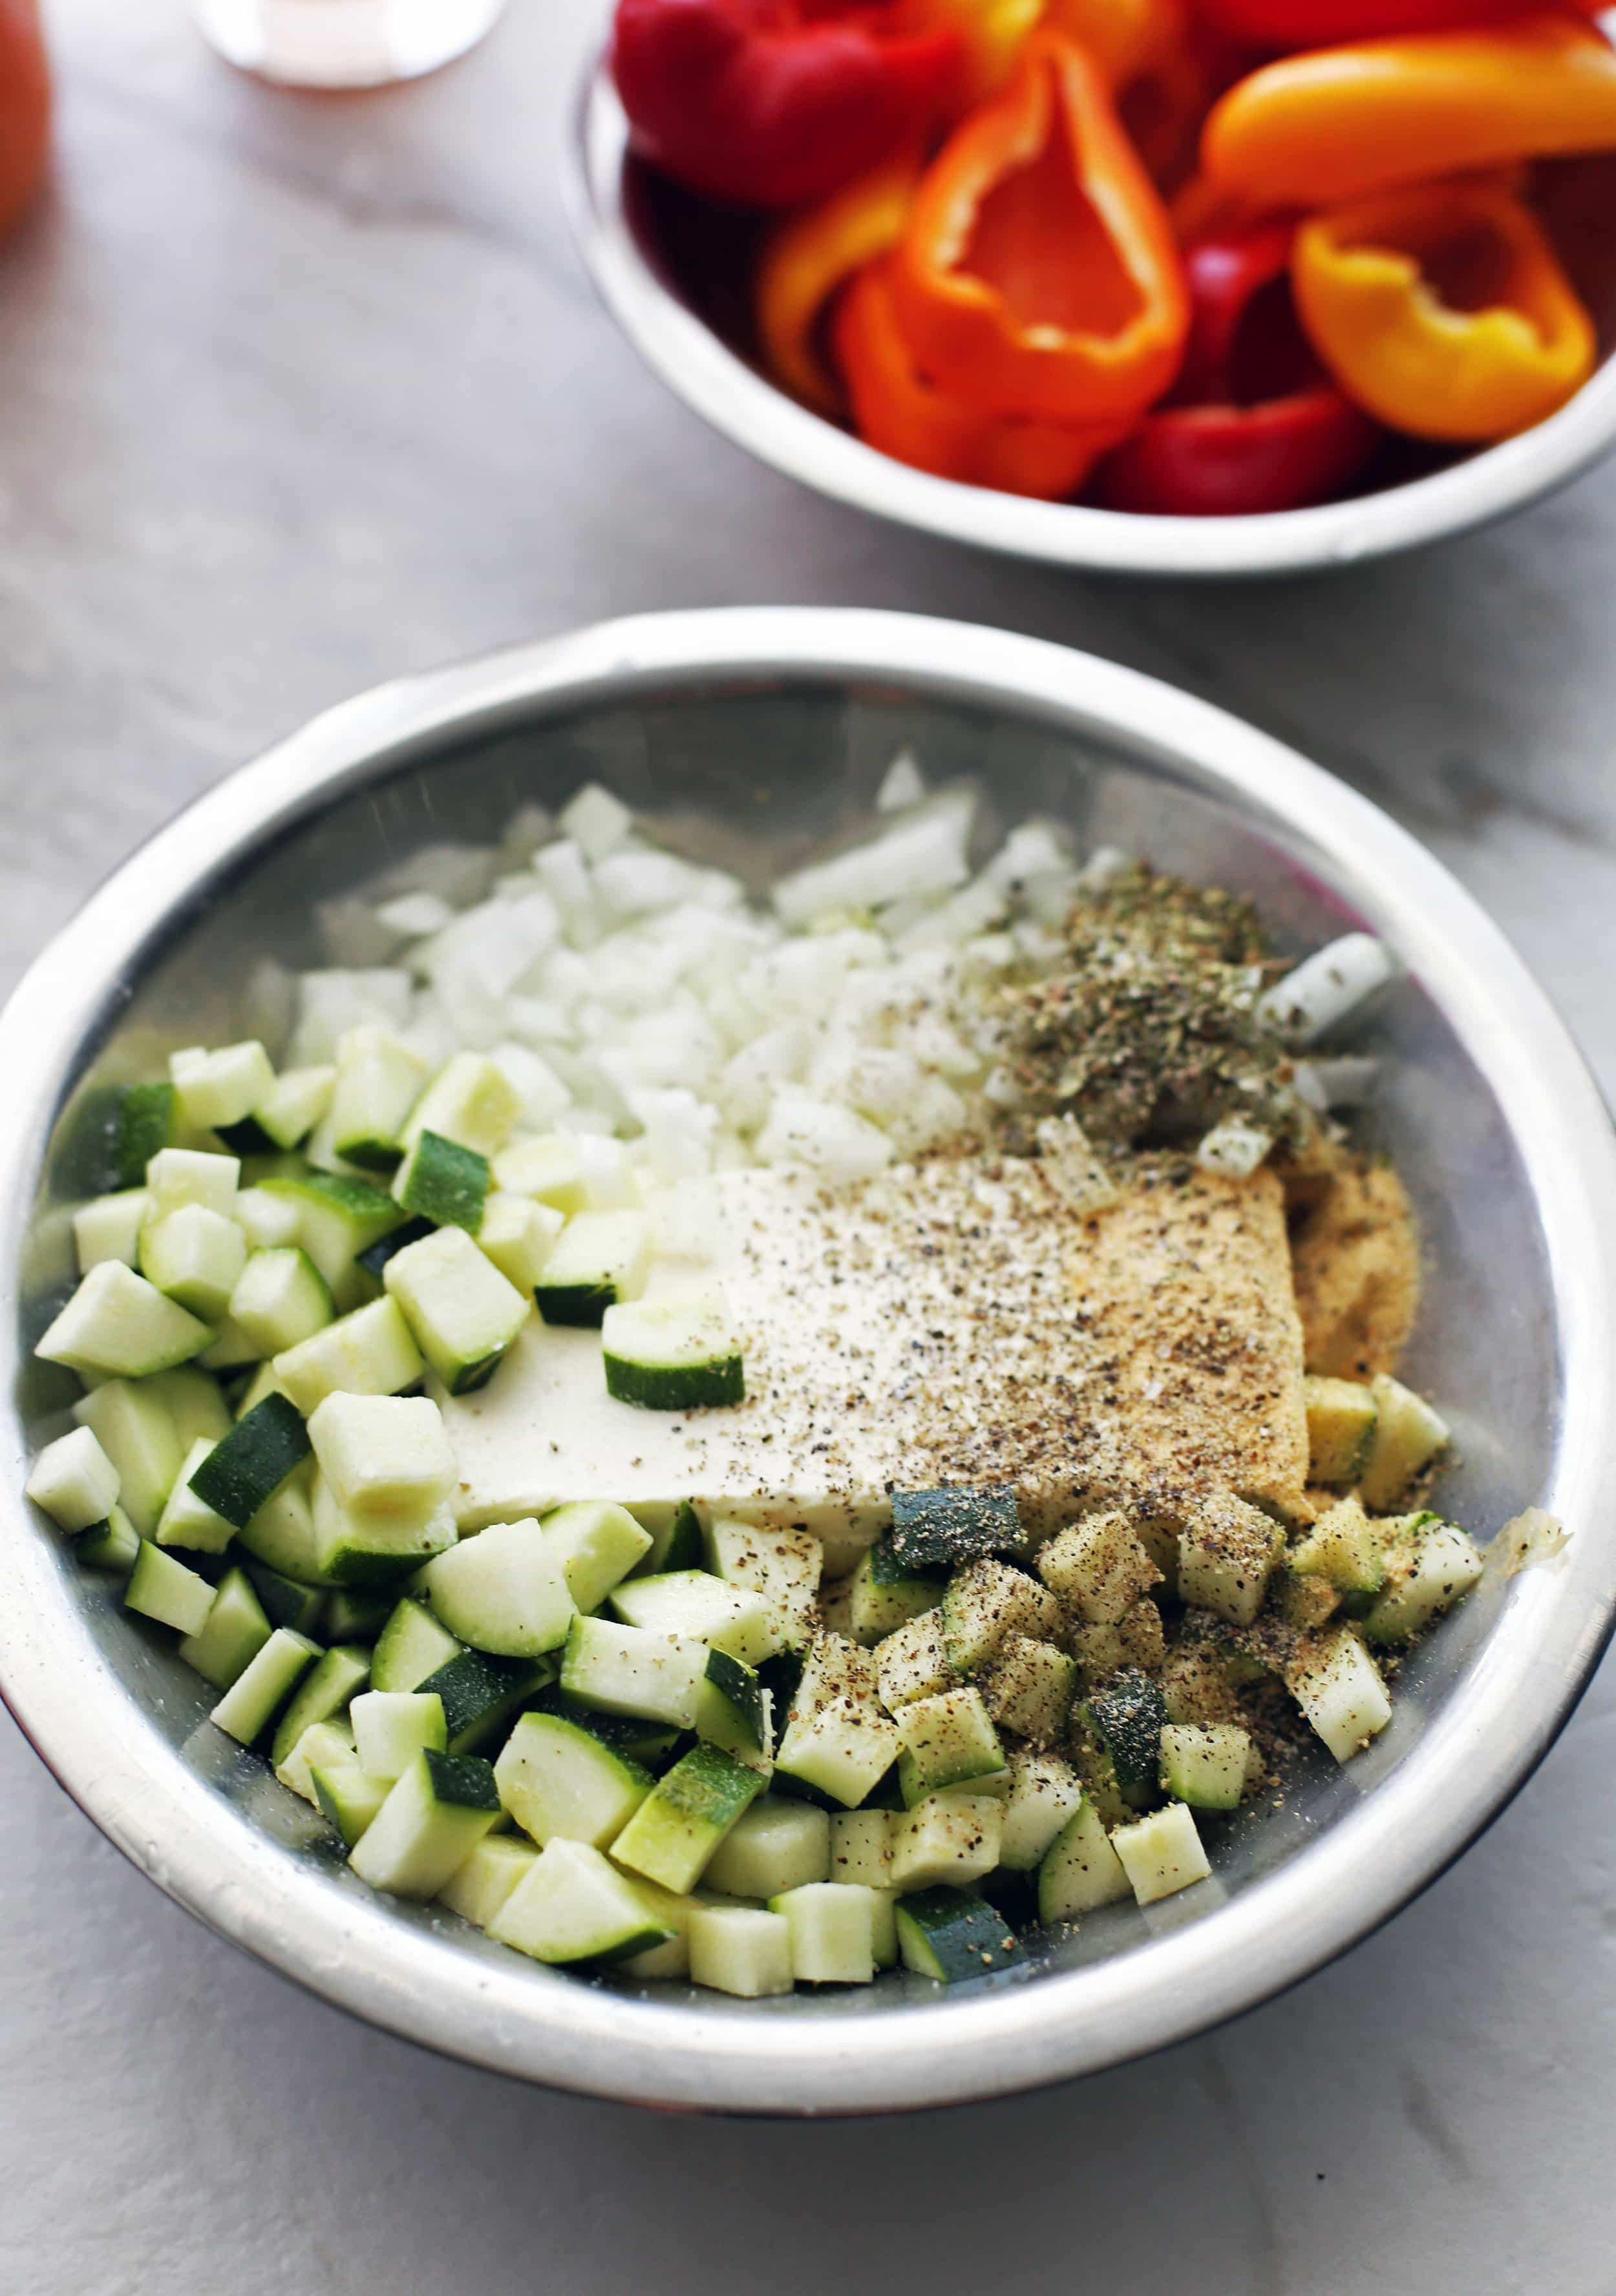 A metal bowl containing cream cheese, diced zucchini, onion, dried herbs, and spices.